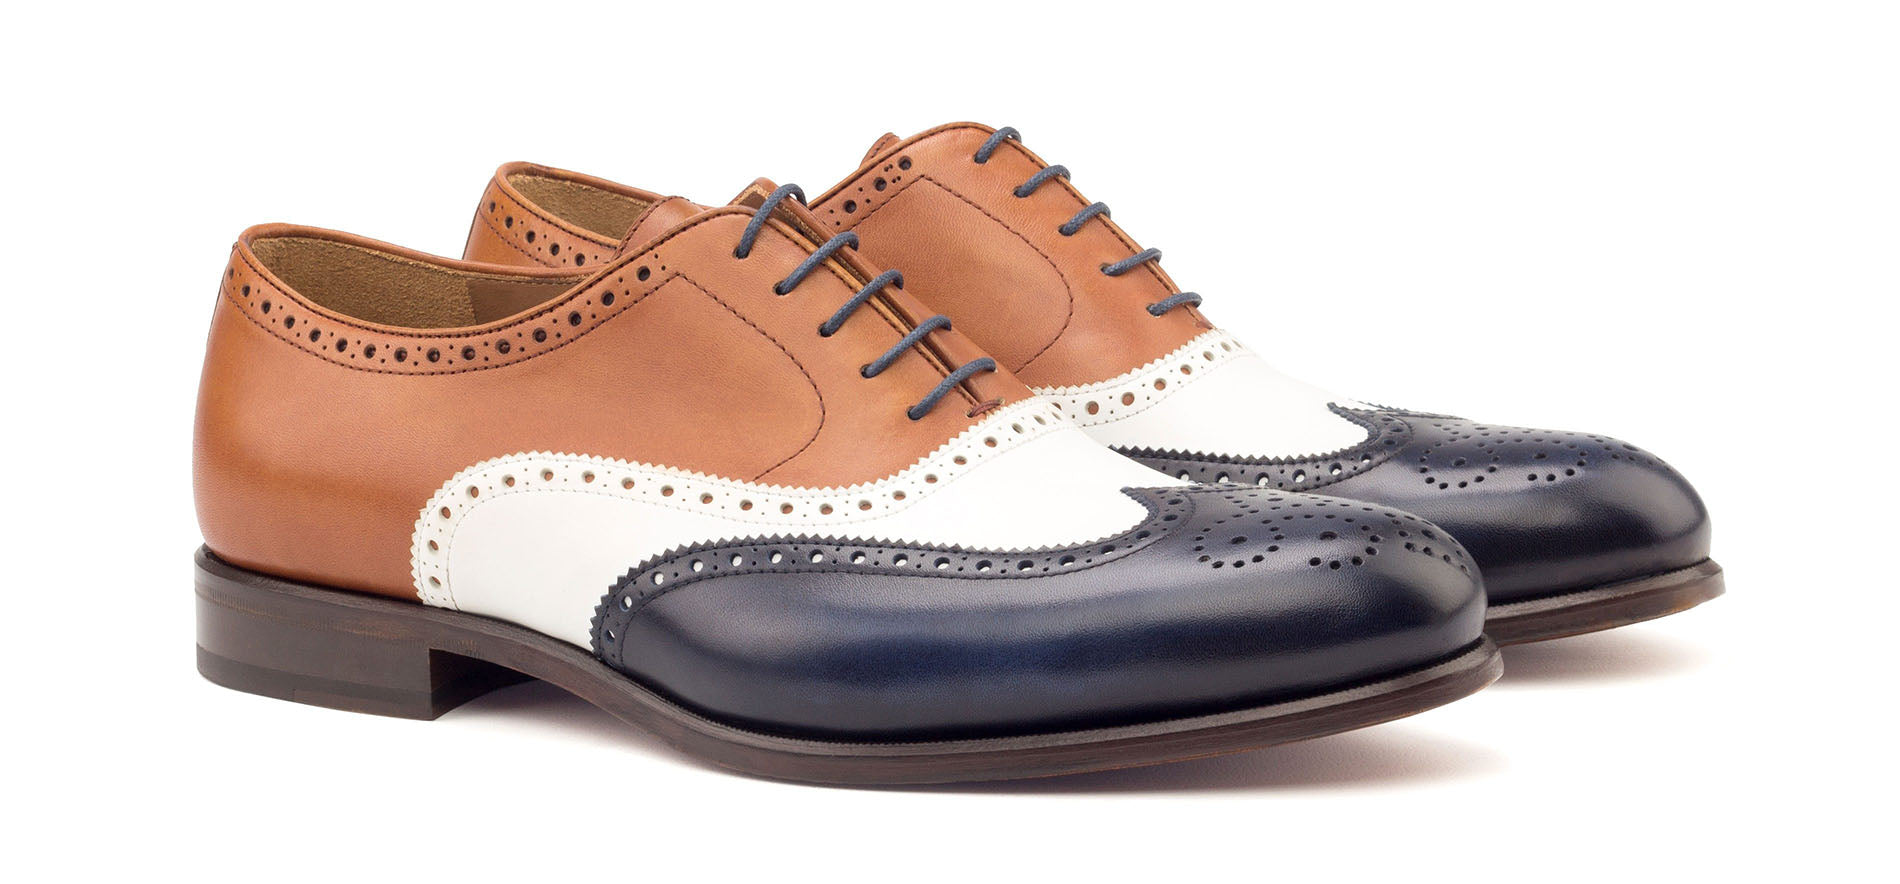 Navy Blue Tan Brown White Leather Formal Oxford Wingtip Brogue Lace Up Shoes for Men with Leather Sole. Goodyear Welted Construction Available.